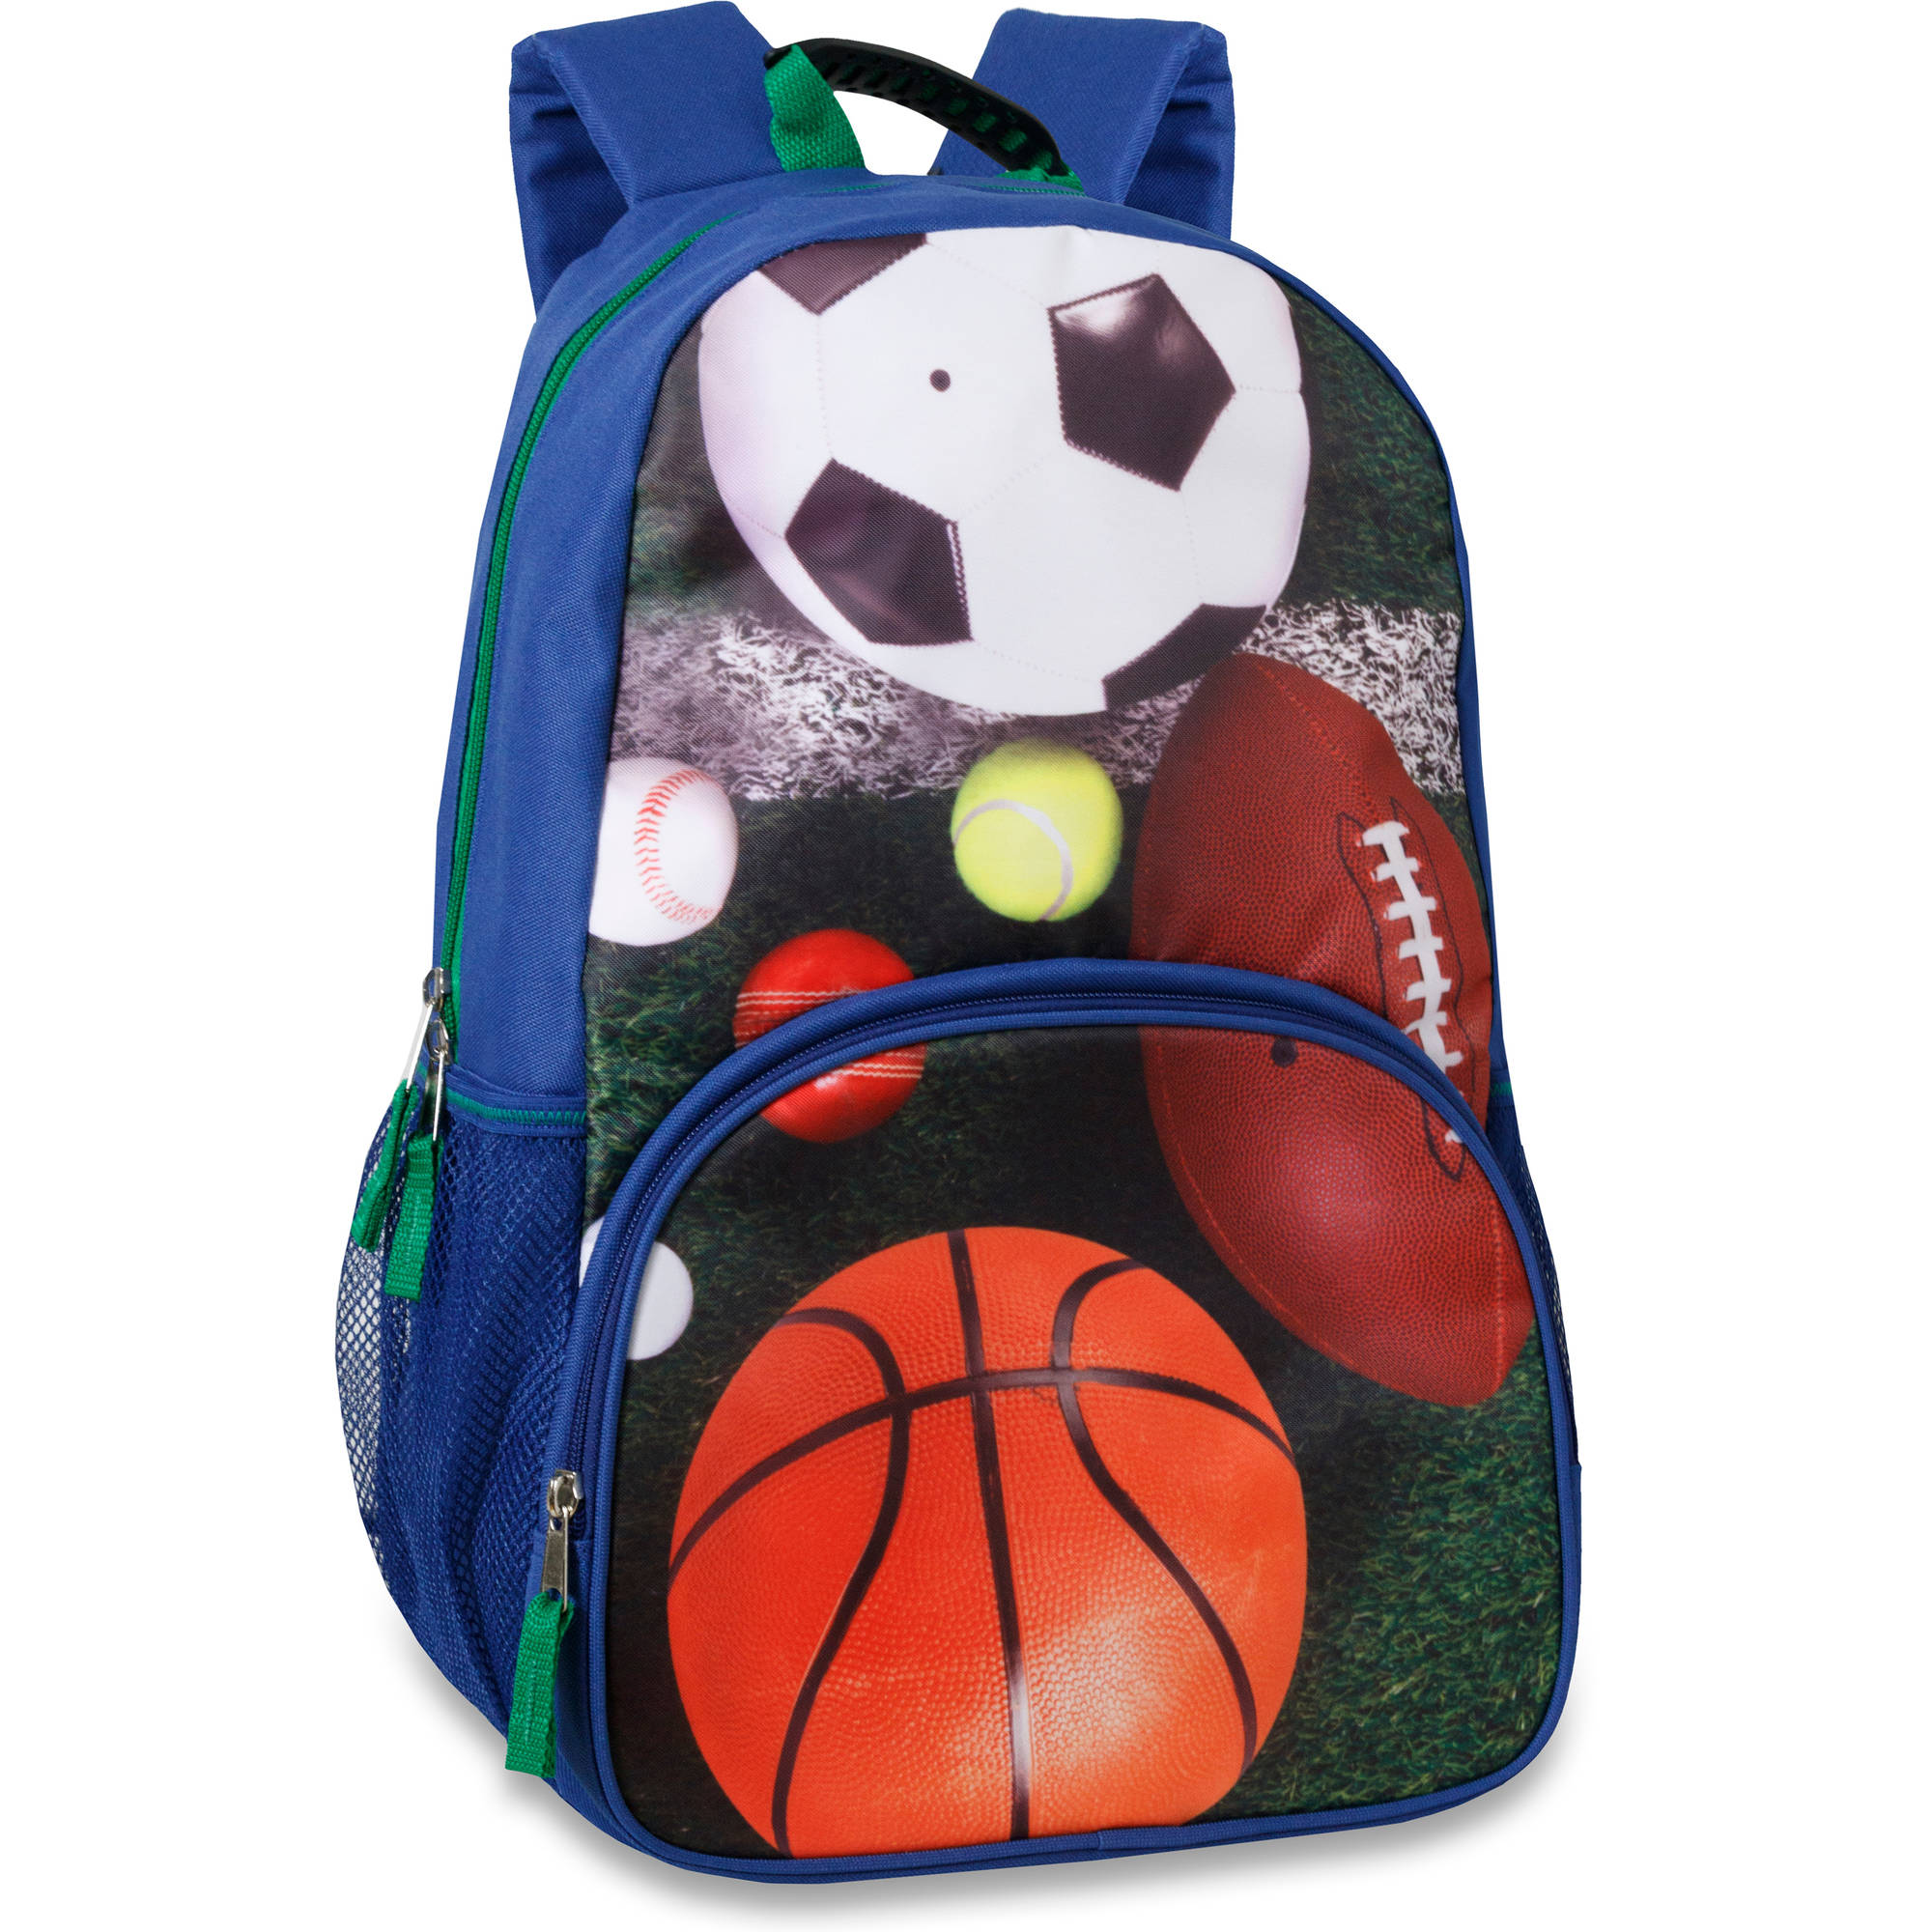 17.5 Inch Sports Photo Real Backpack